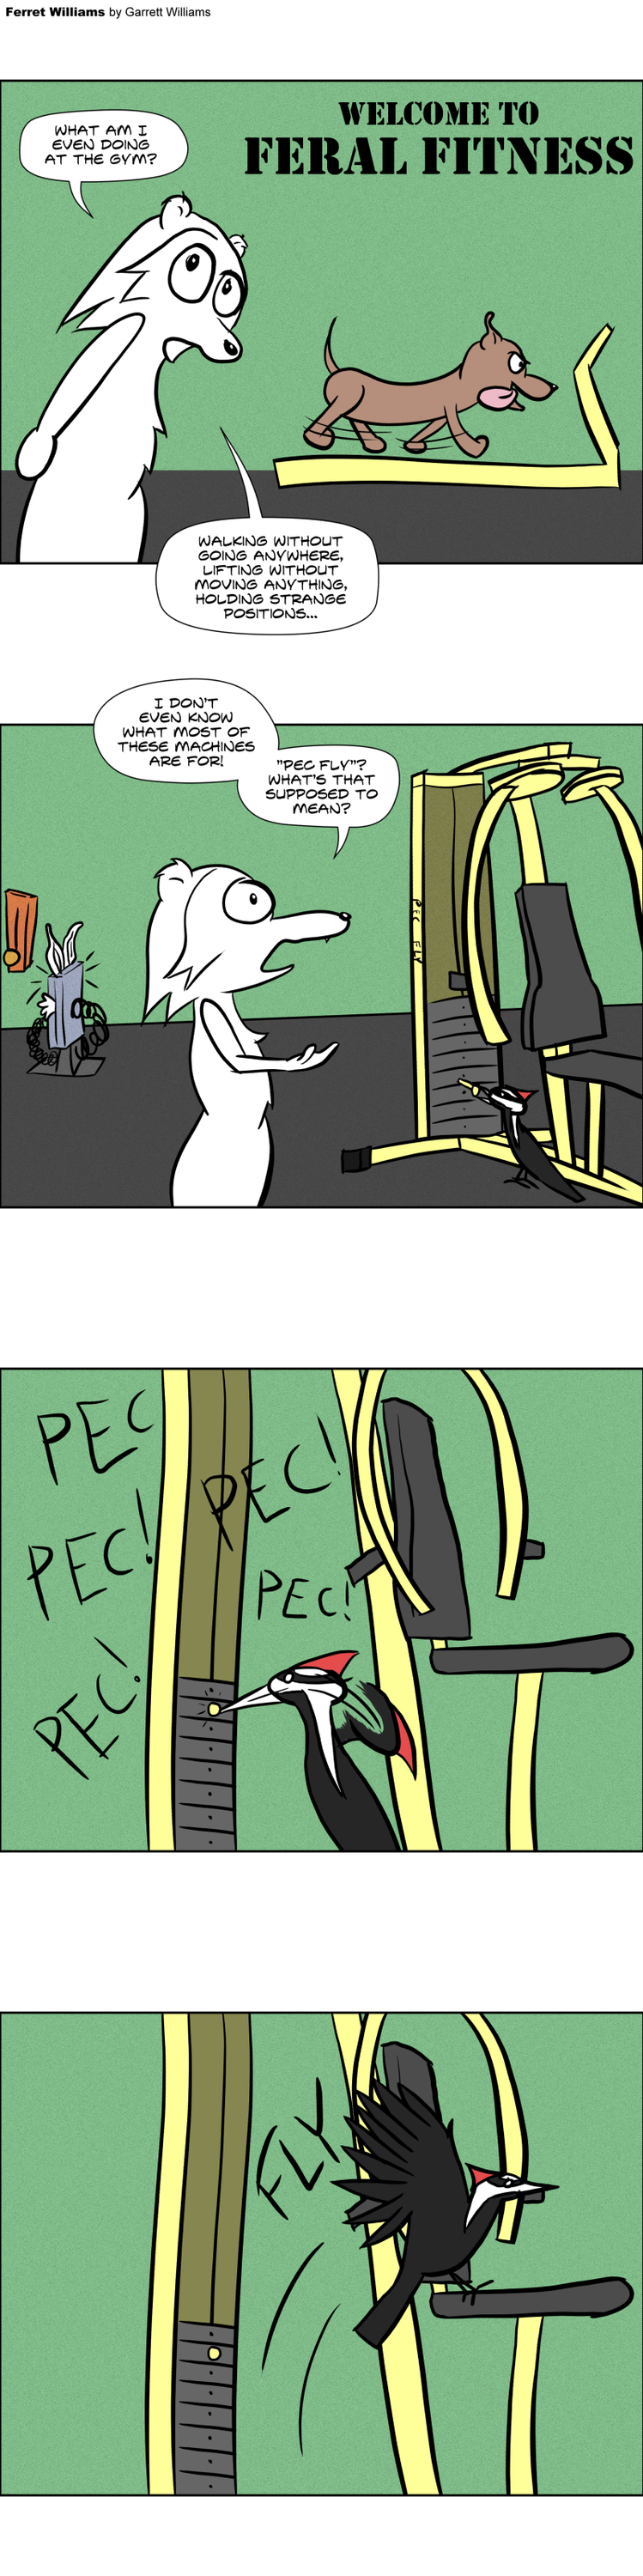 Most recent image: Feral Fitness